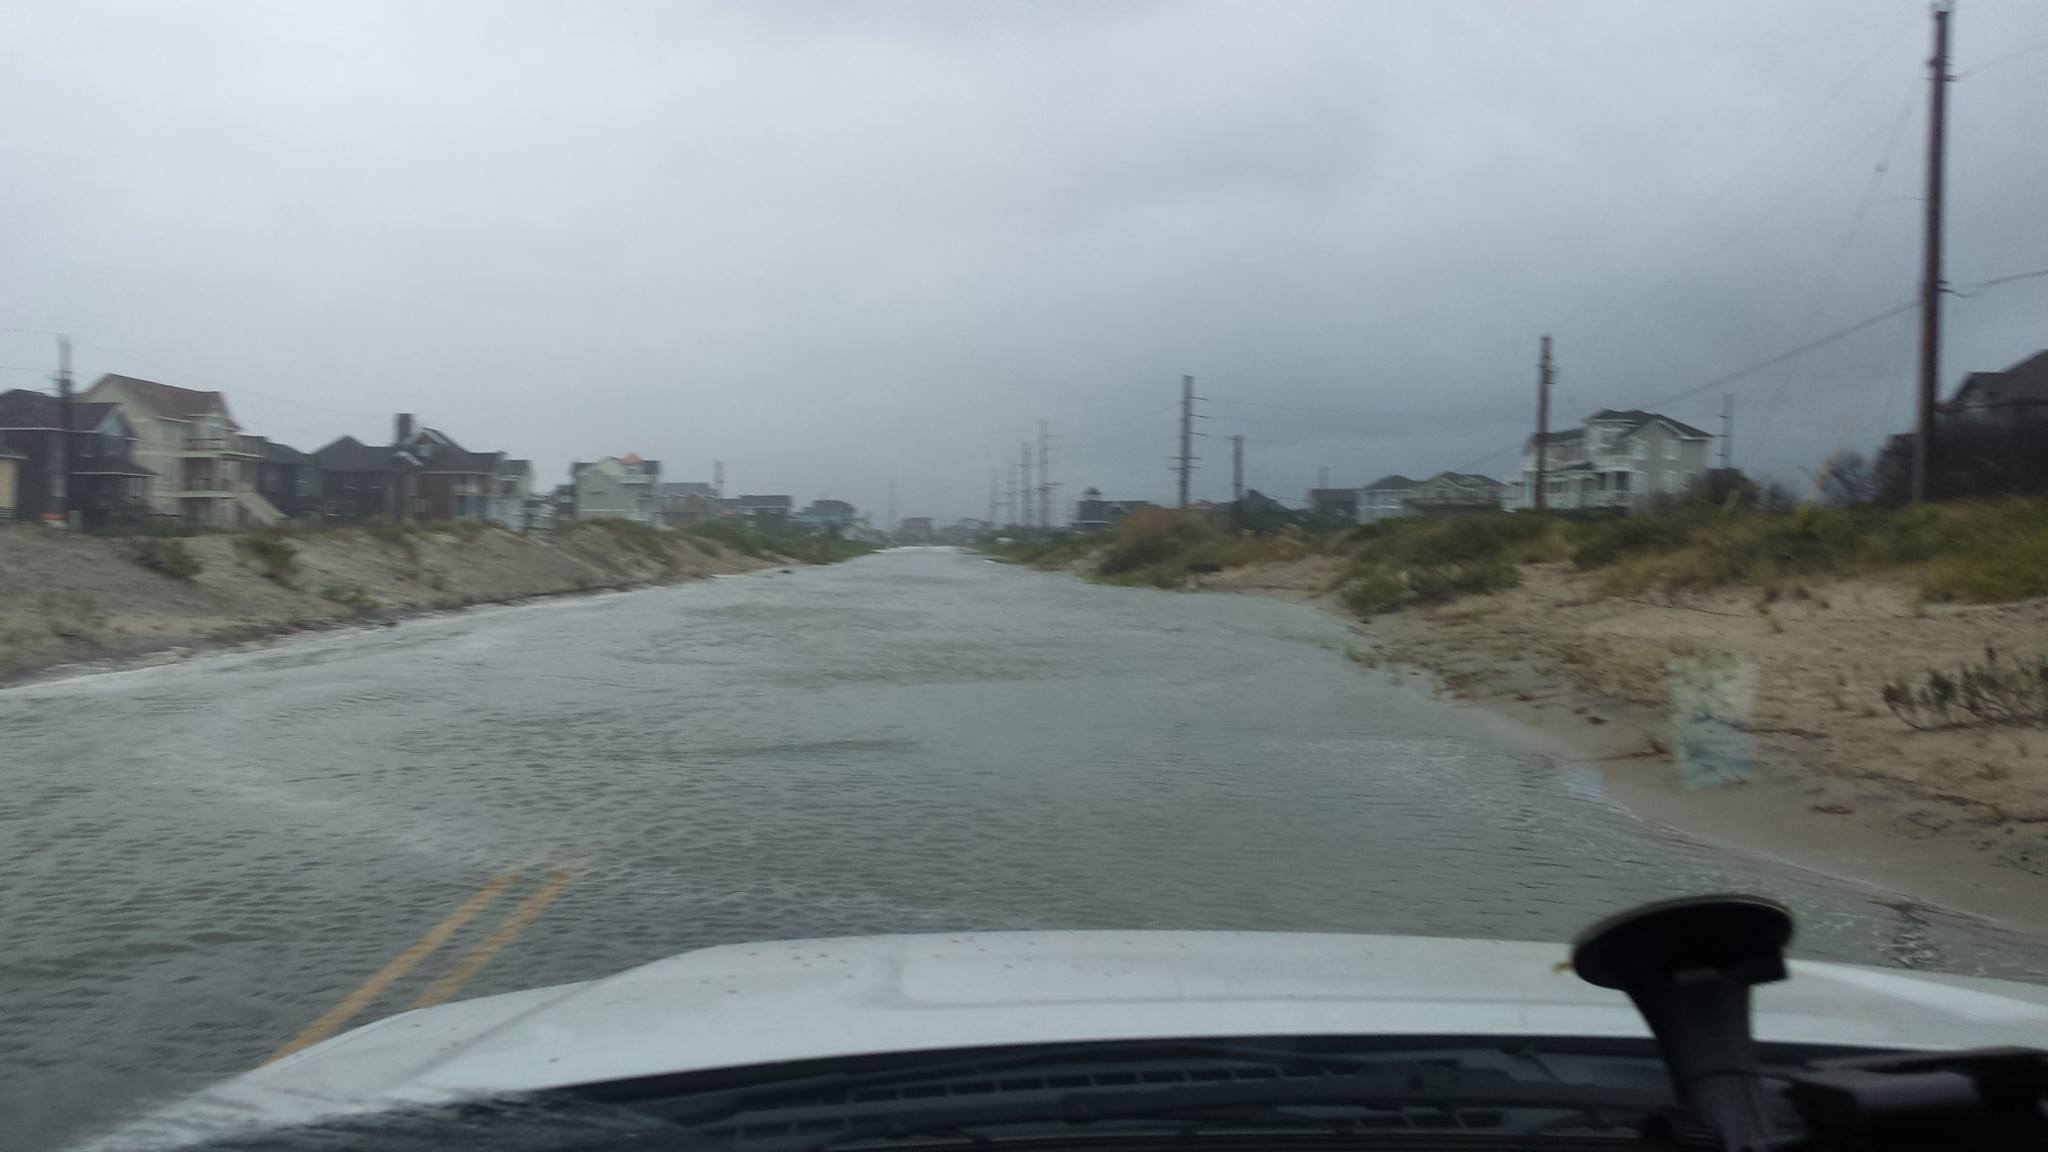 """<div class=""""meta image-caption""""><div class=""""origin-logo origin-image none""""><span>none</span></div><span class=""""caption-text"""">NC12 is temporarily closed just north of the Pea Island Visitors Center while we wait for the tide to subside. (Credit: NC DOT 12/Facebook)</span></div>"""